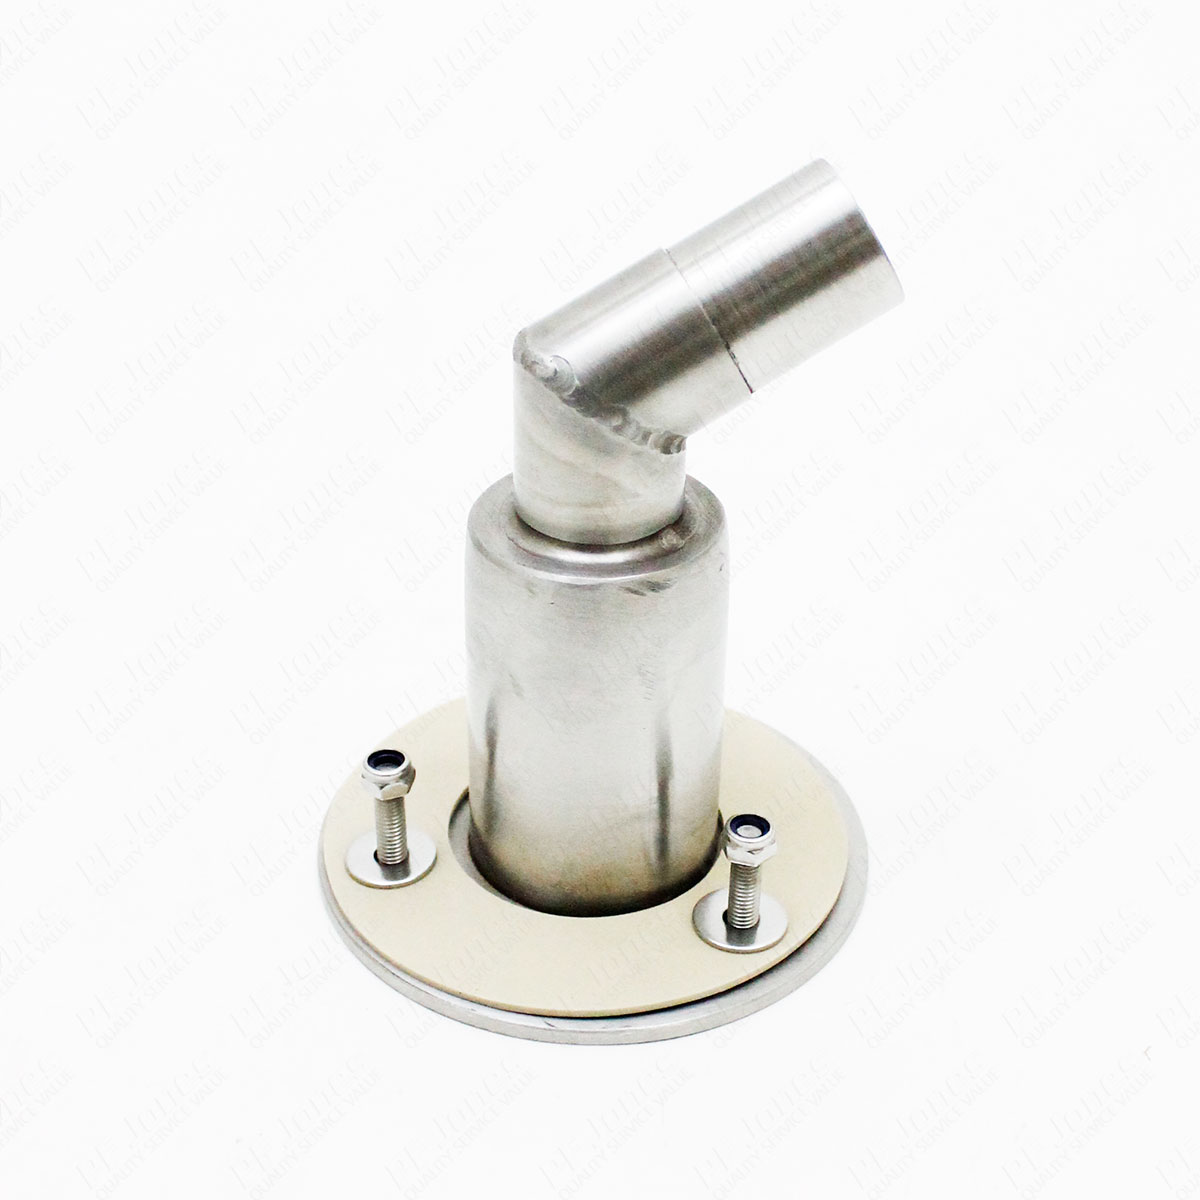 Stainless steel exhaust adapter/ hull fitting